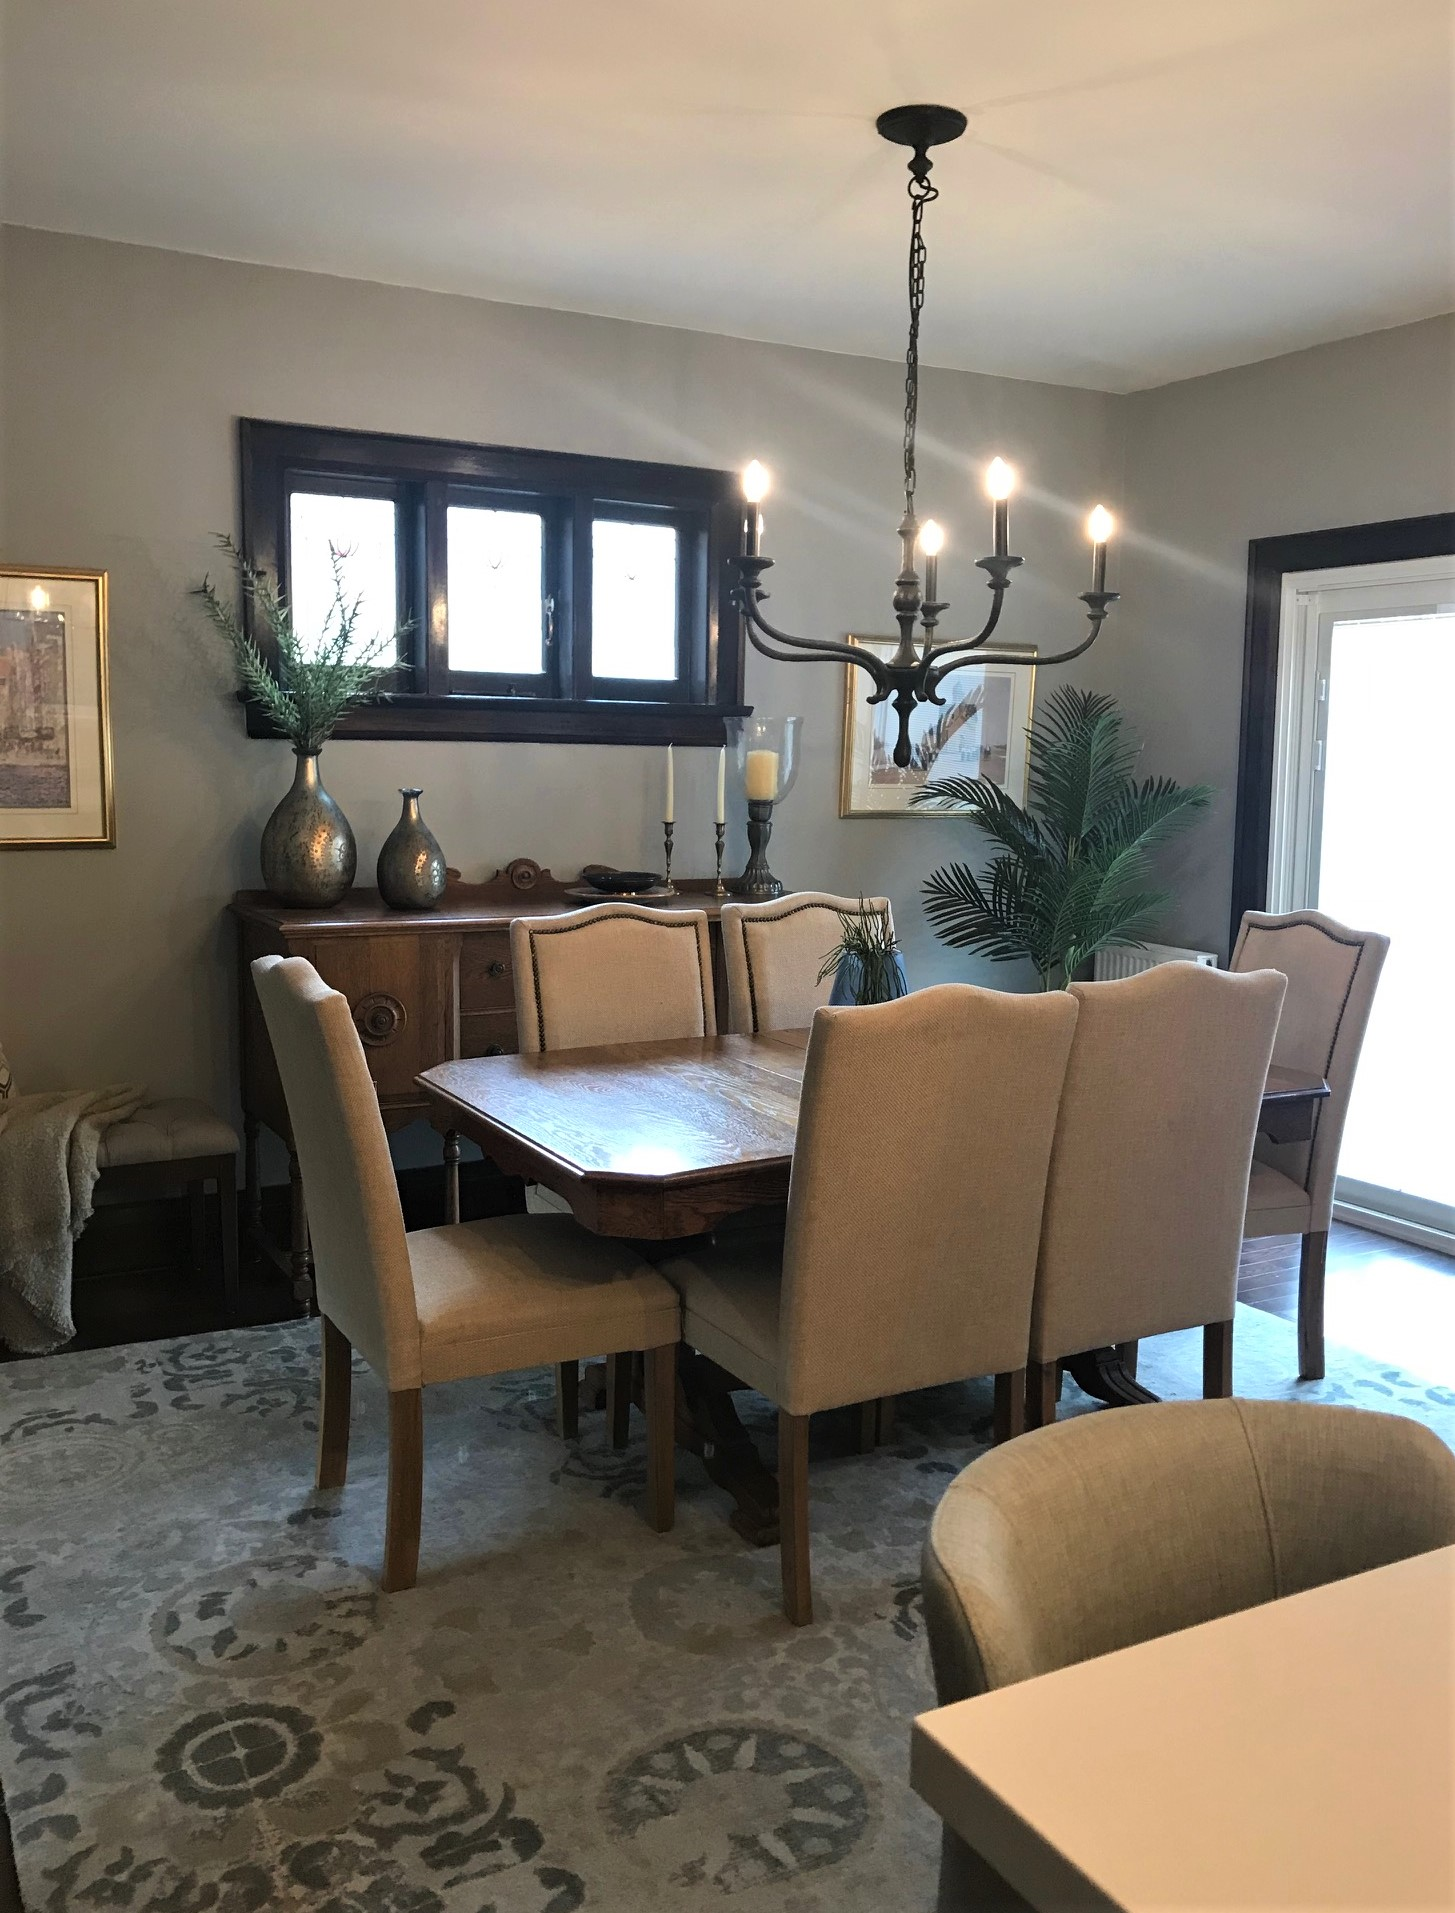 Home Front Redesigns Kennedy Avenue Project Dining Room Photo2